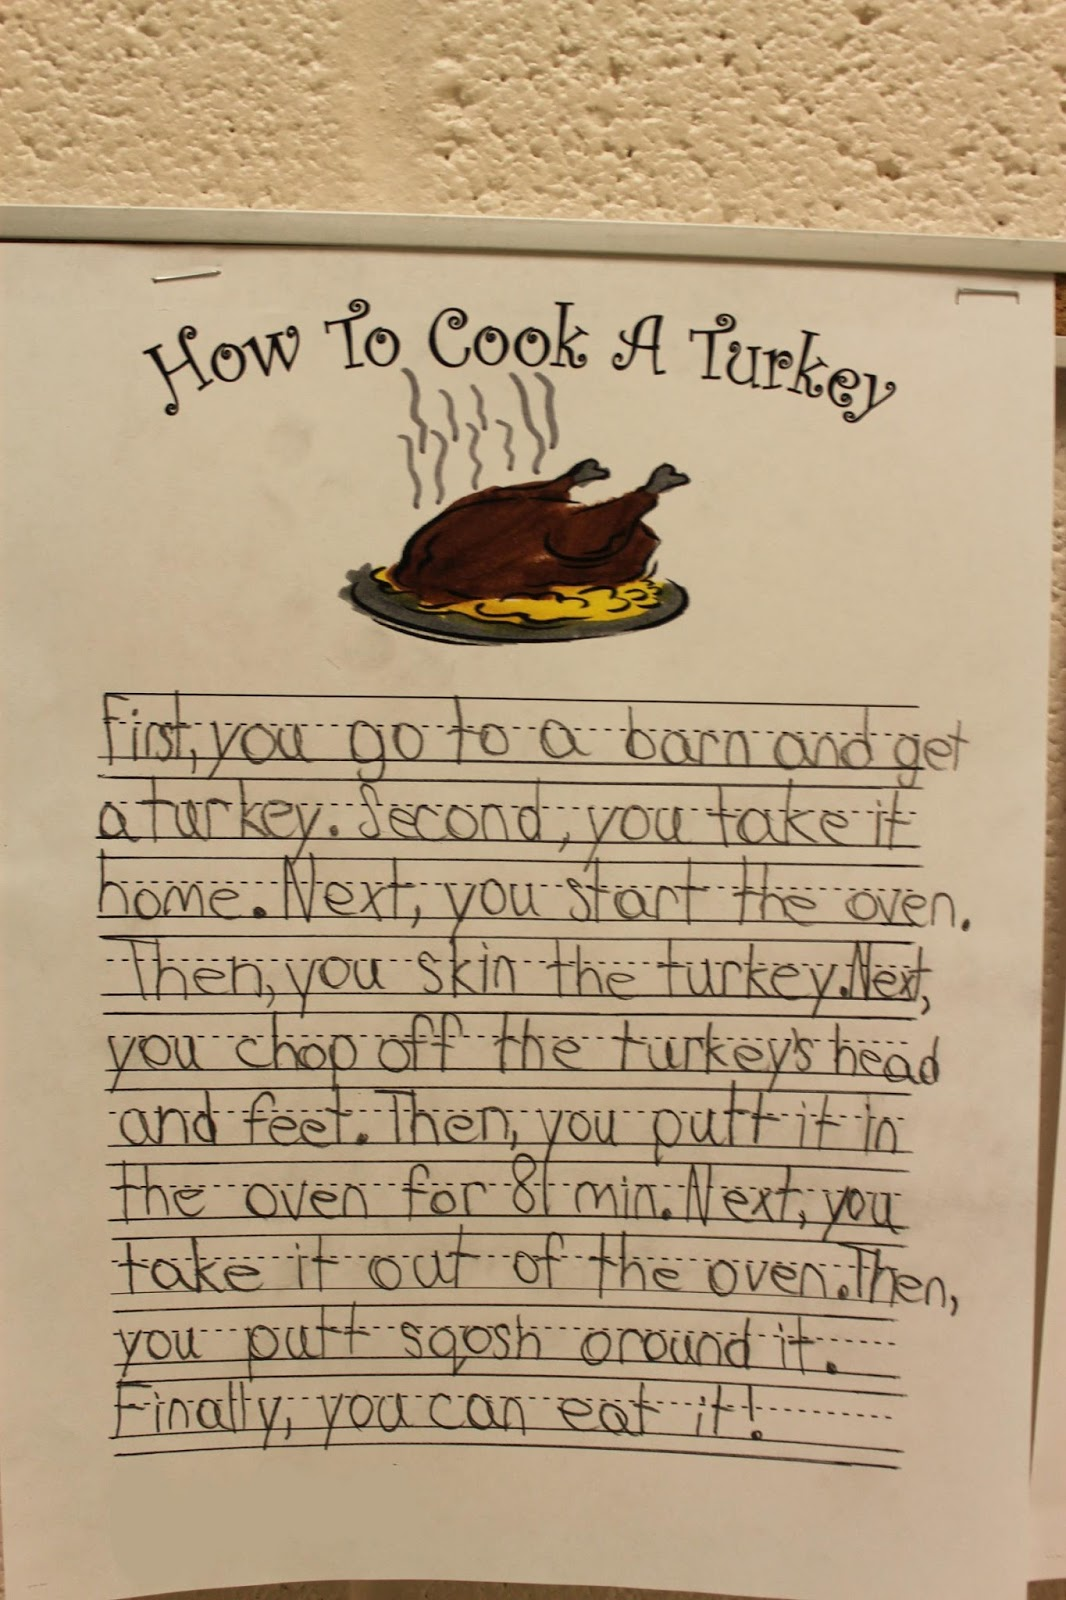 how to cook a turkey fast